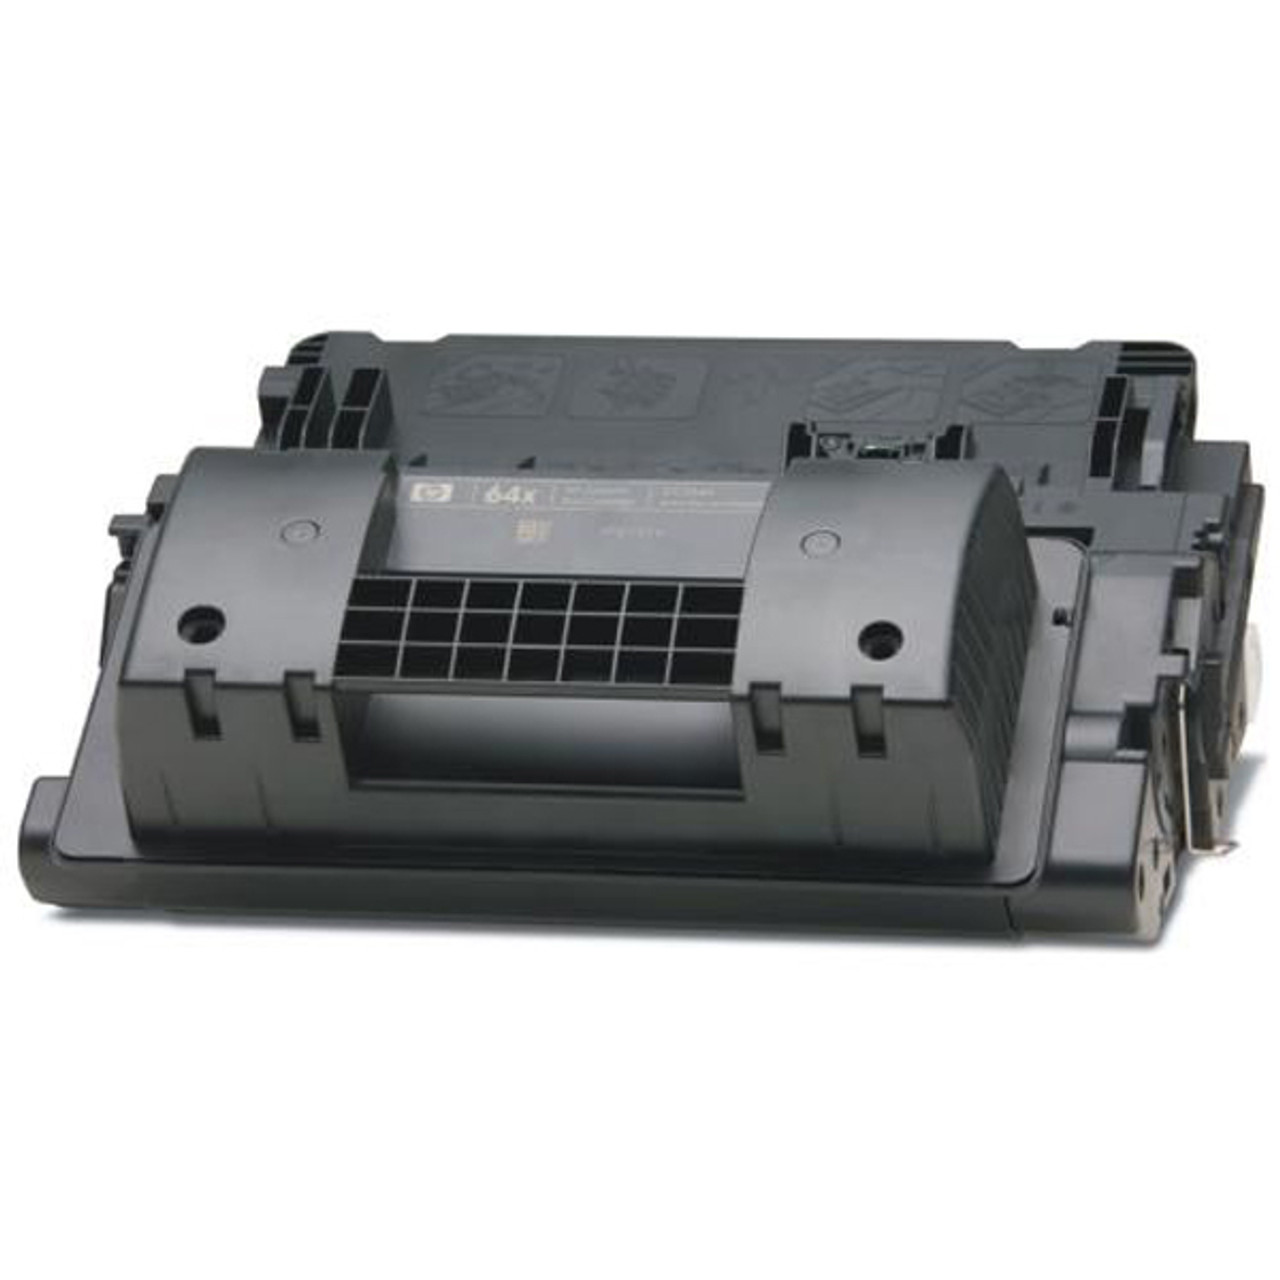 HP M600 Toner Cartridge - High Yeild - New compatible